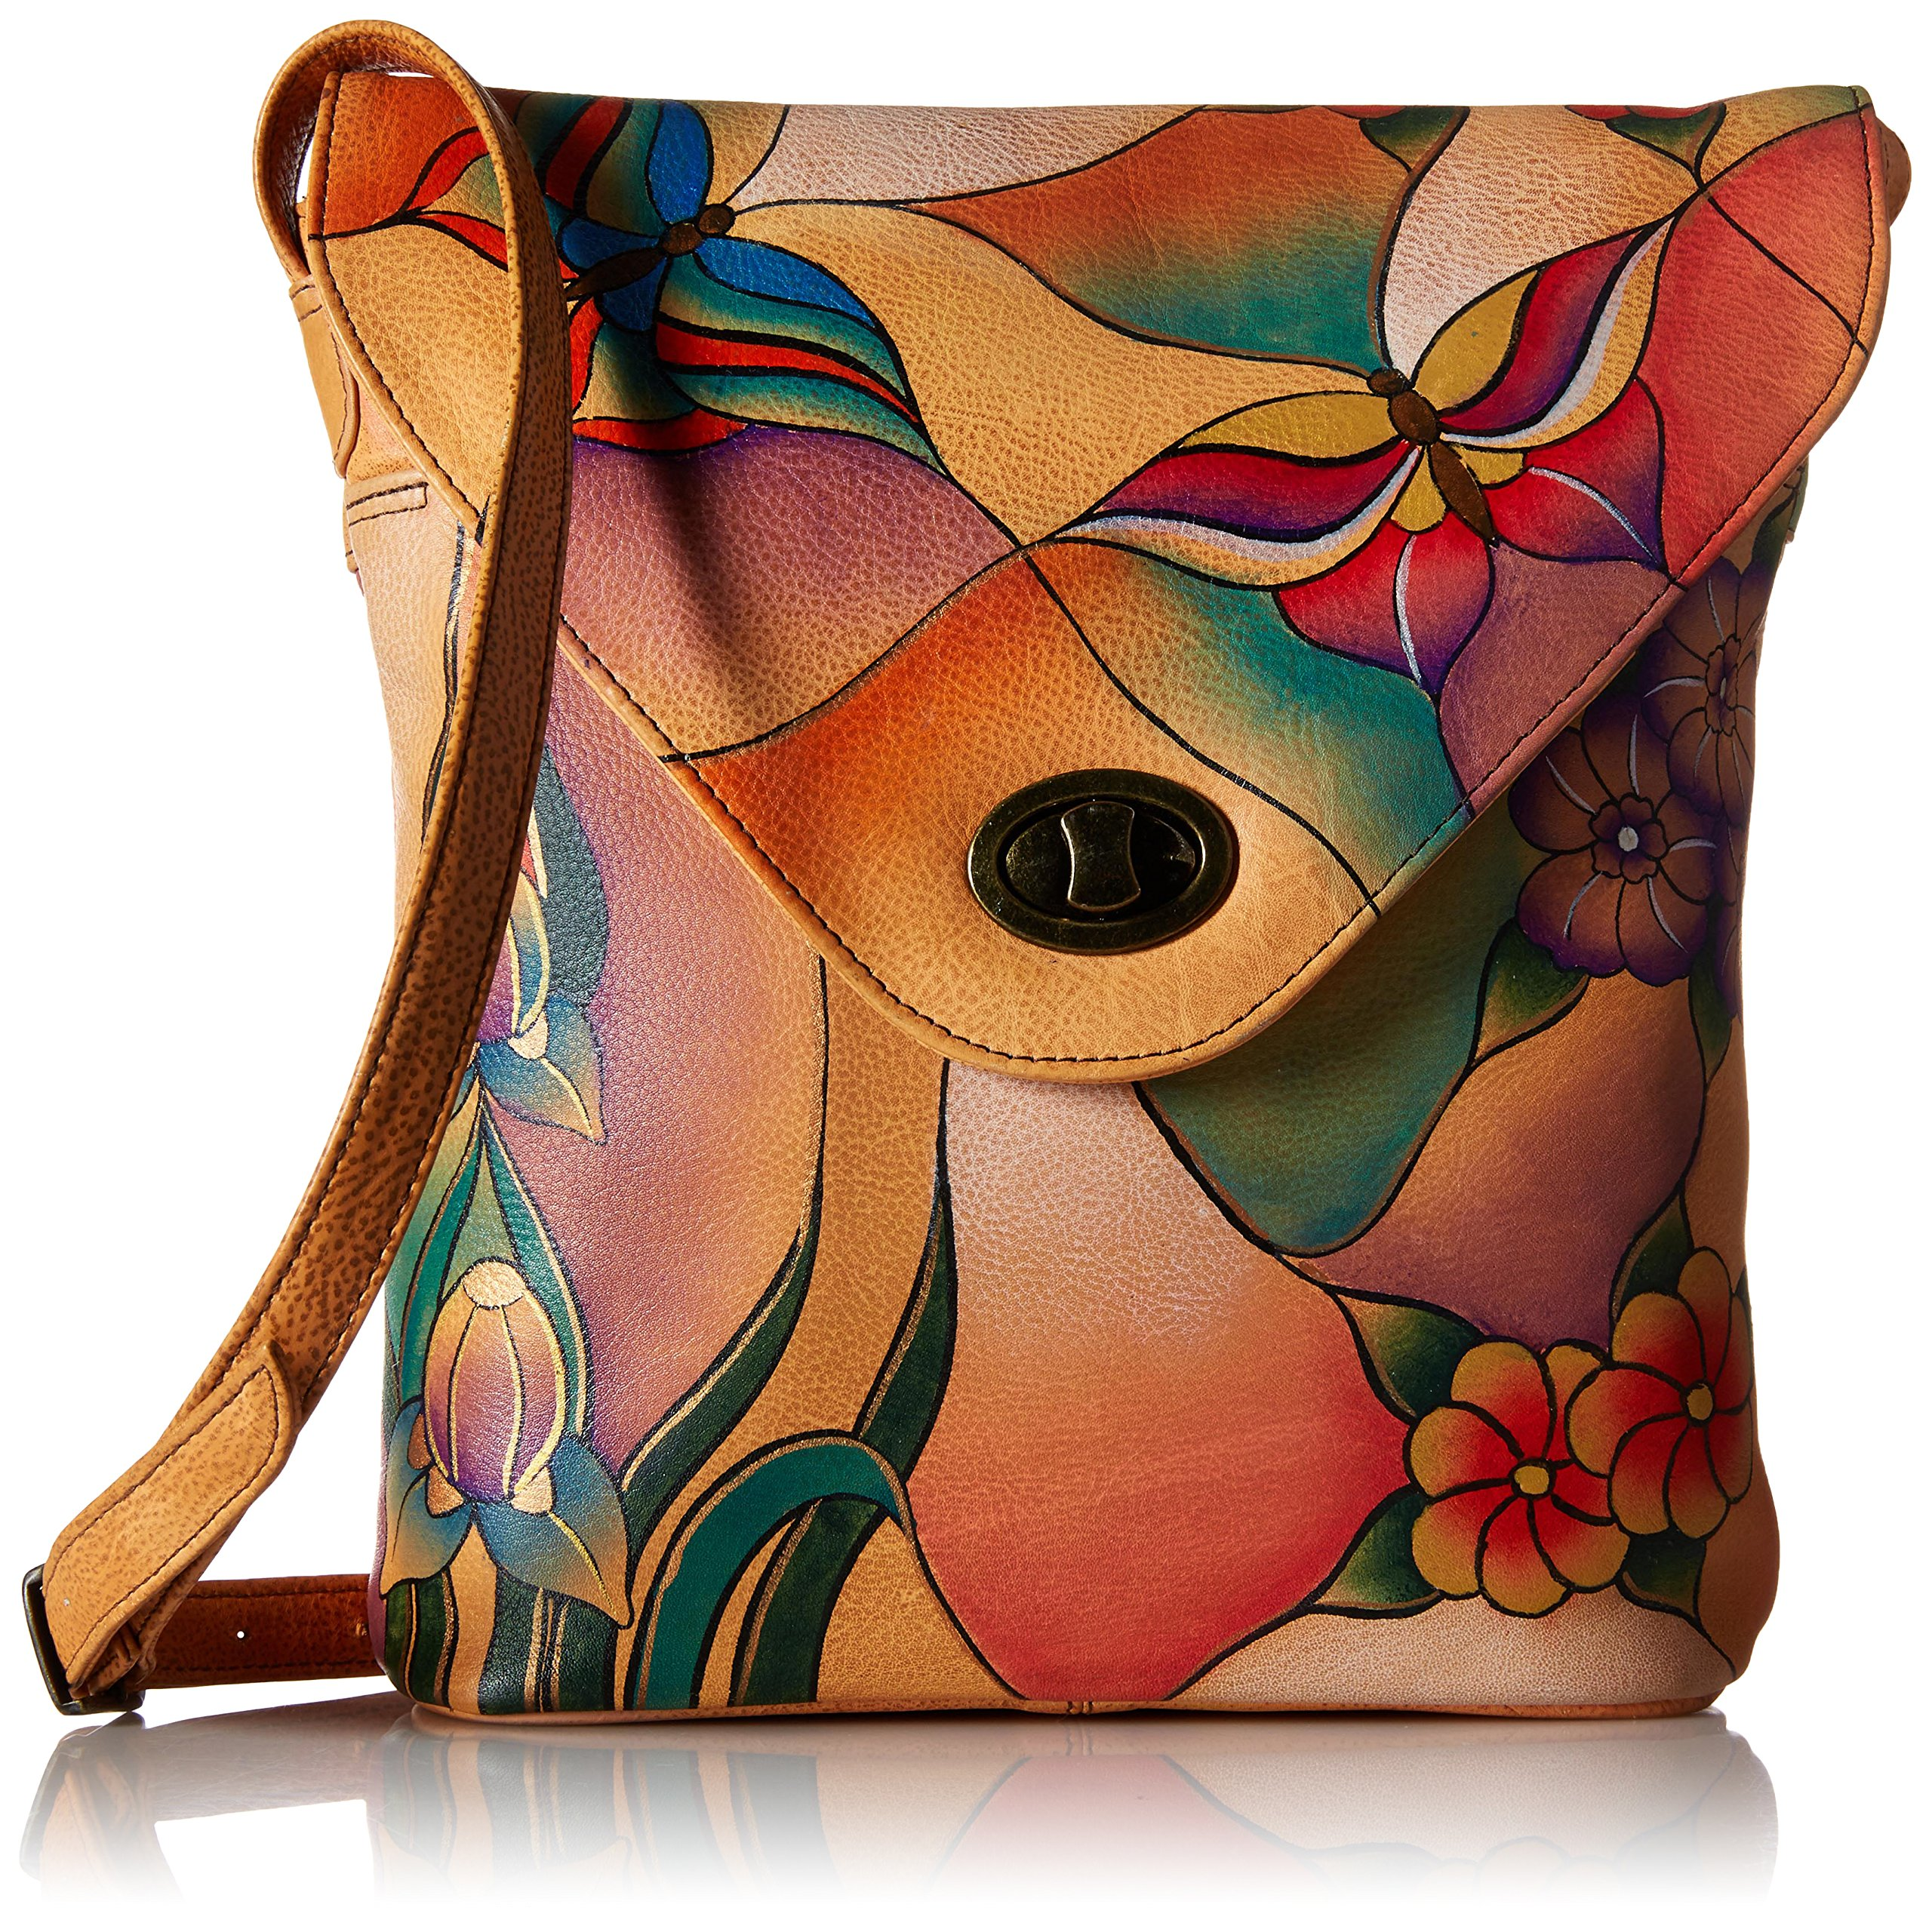 Anuschka Handpainted Leather 8059-BGP V Shape Flap Bag, Butterfly Glass Painting, One Size by Anna by Anuschka